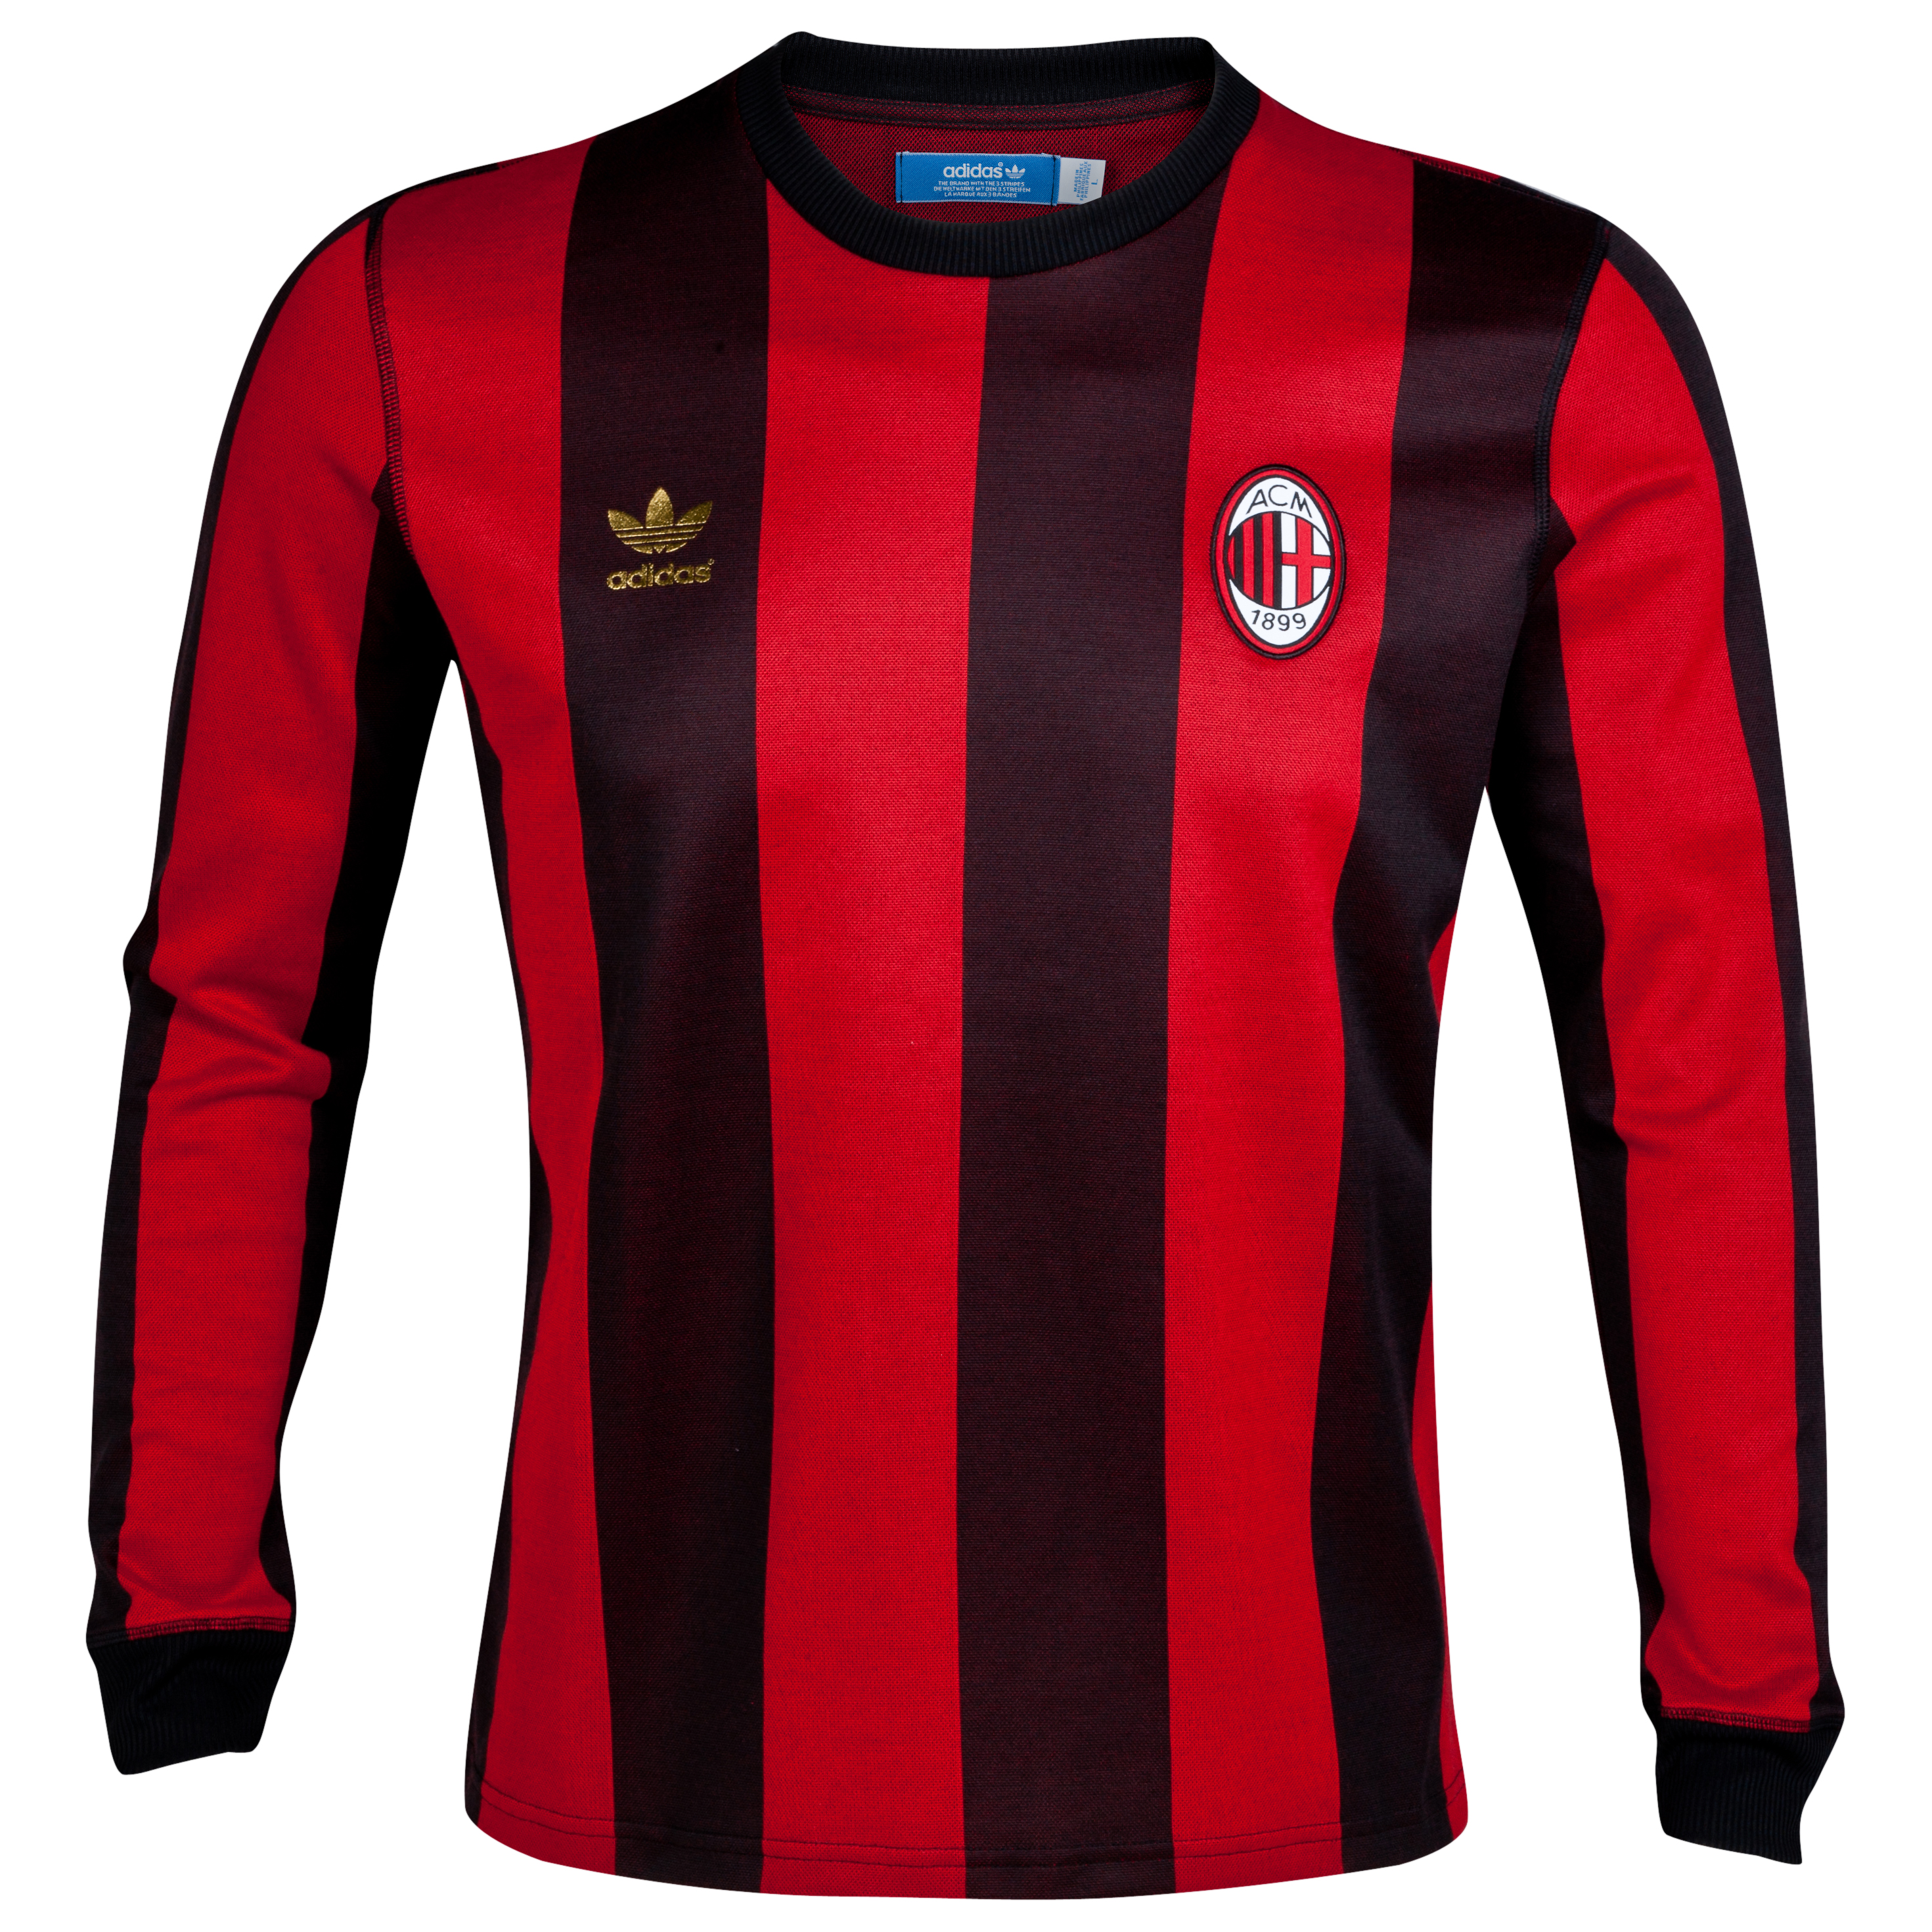 adidas Originals AC Milan Long Sleeve Top - Light Scarlet/Black